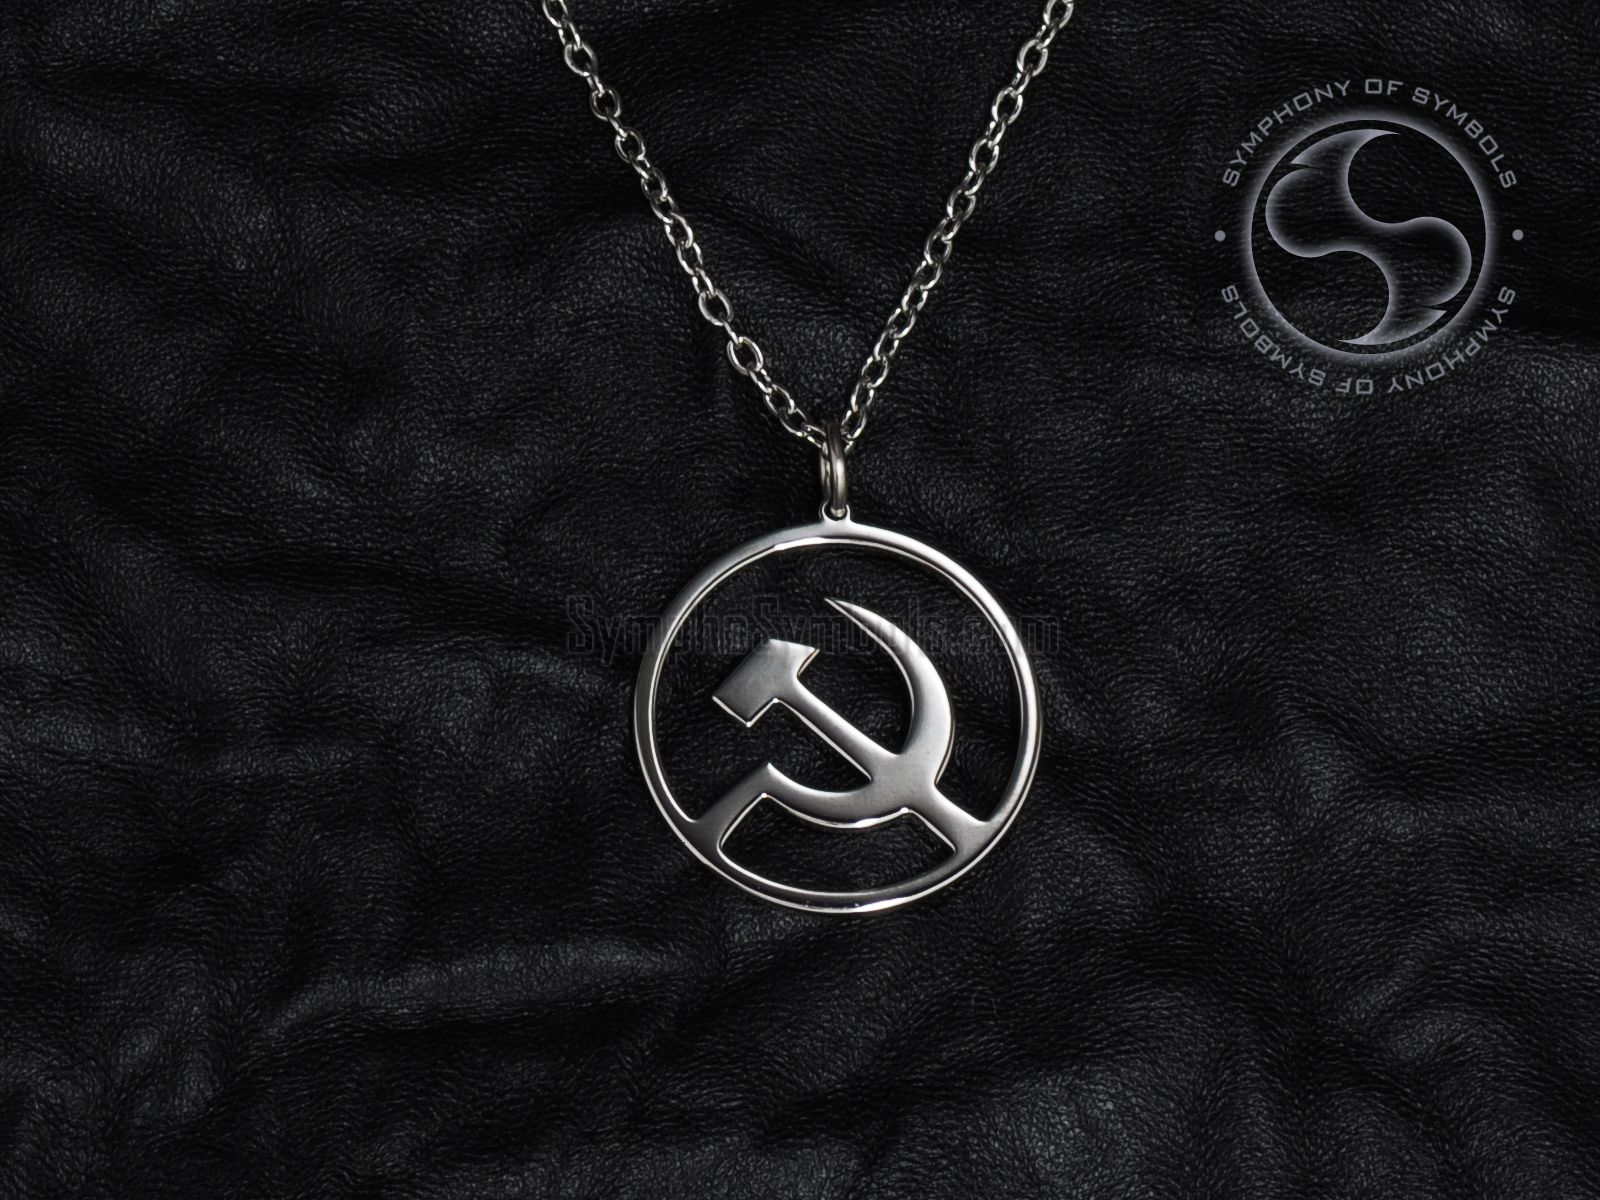 Hammer And Sickle Pendant Communist Symbol Ussr Necklace Soviet